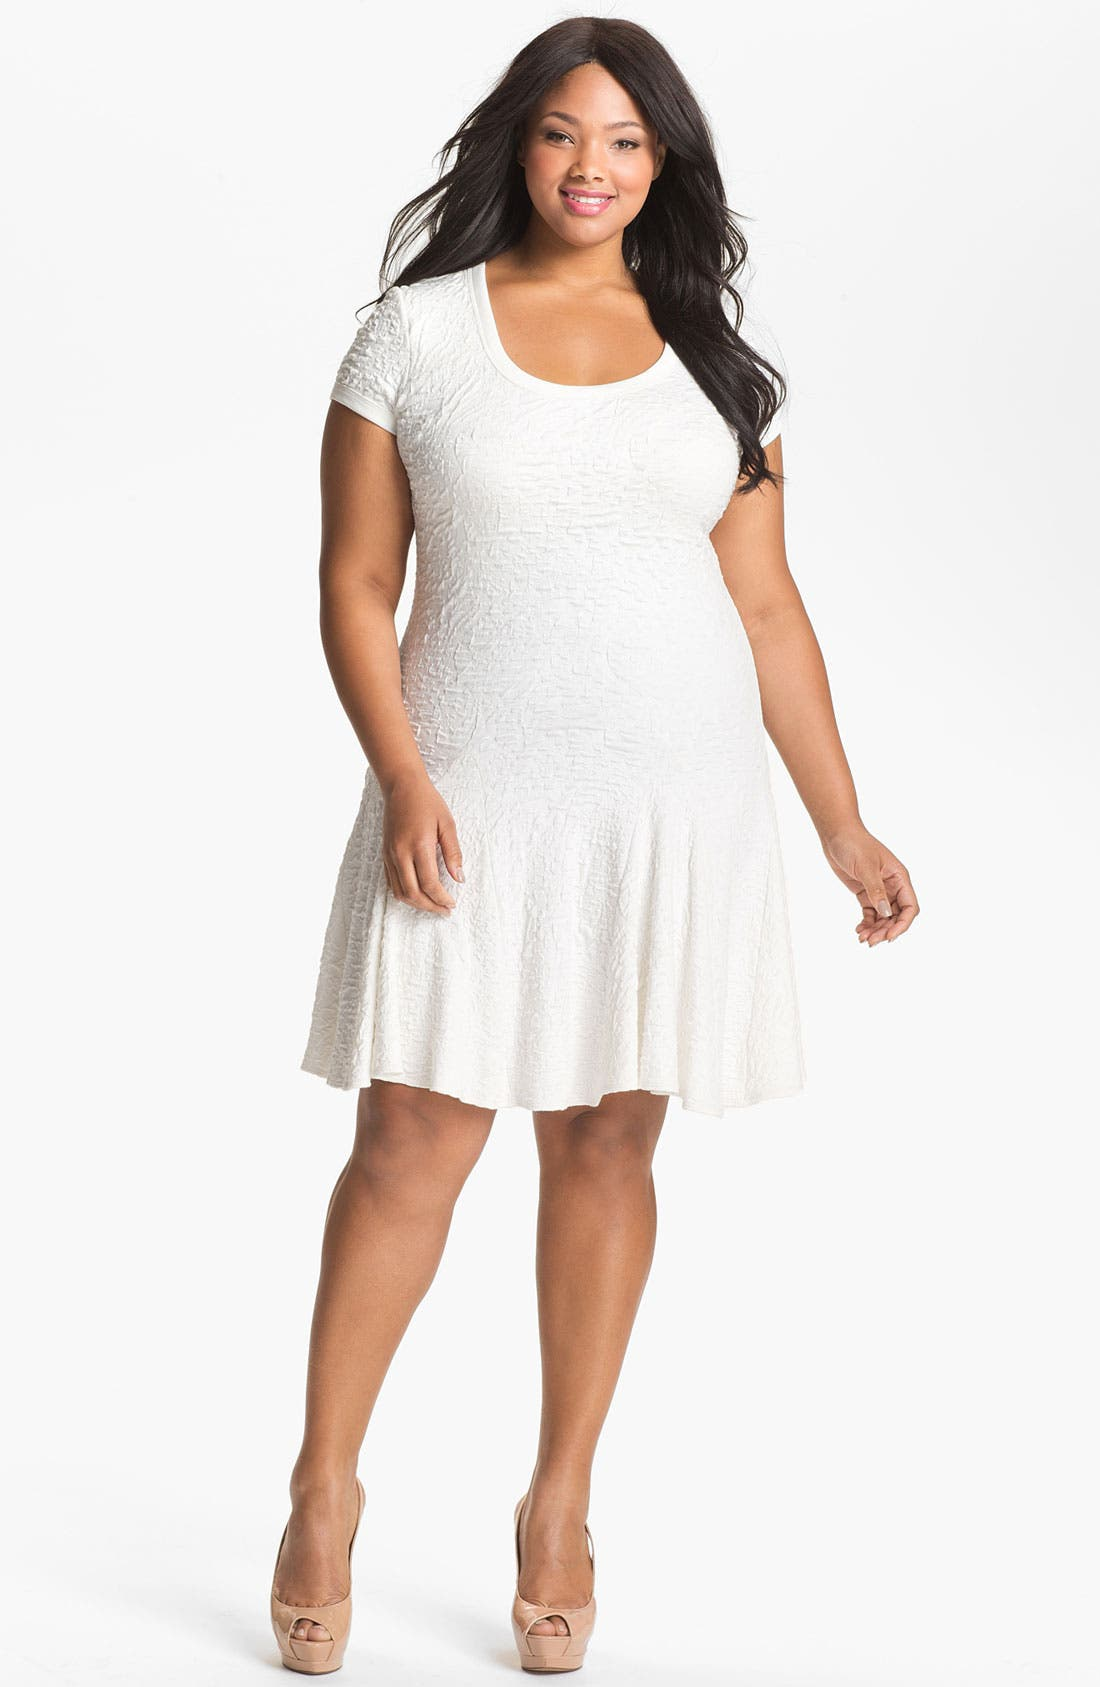 Main Image - A.B.S. by Allen Schwartz Textured Drop Waist Dress (Plus Size) (Online Only)